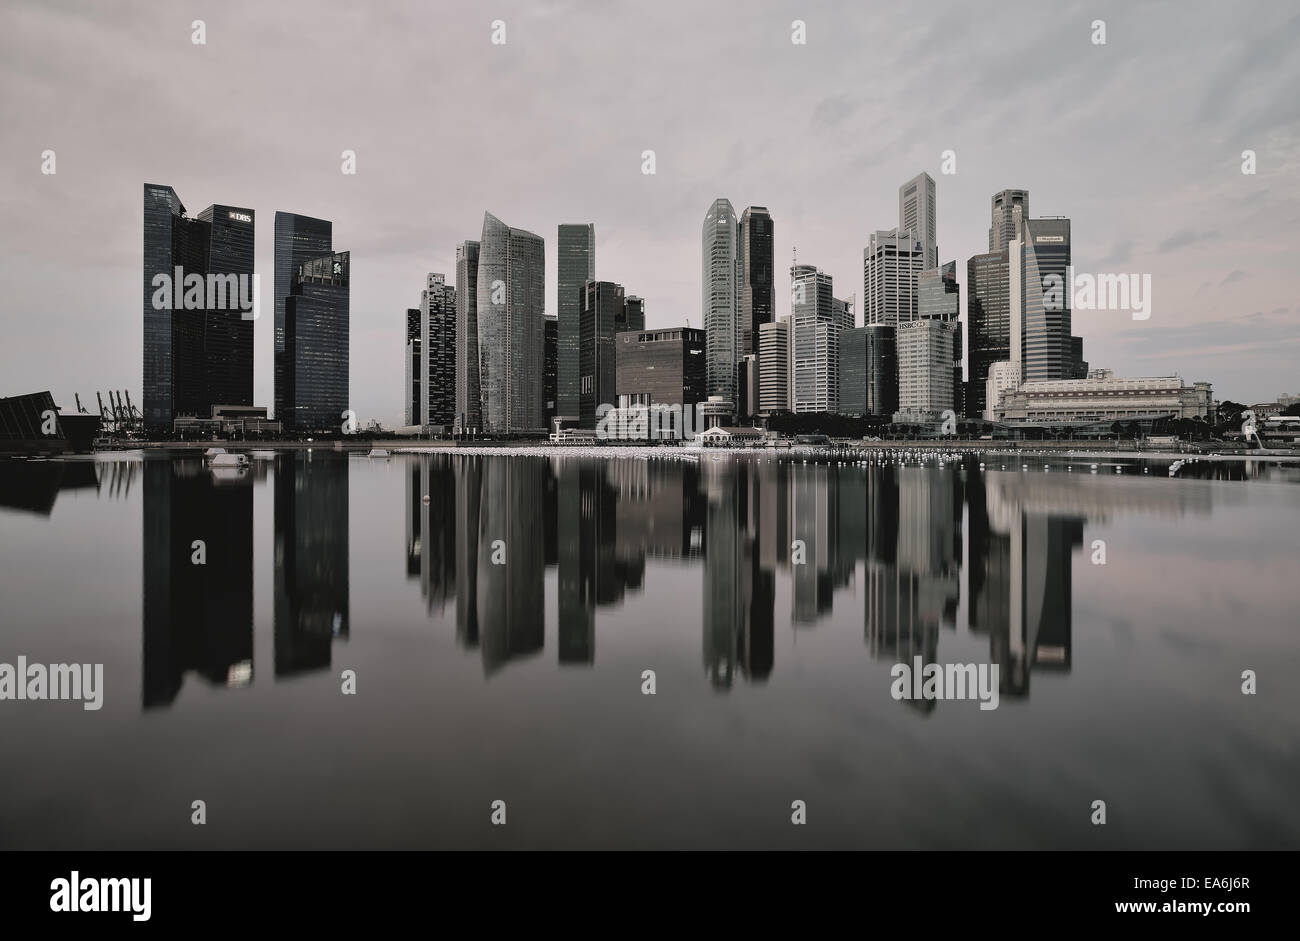 Singapore, Business district taken from Marina Bay waterfront promenade - Stock Image